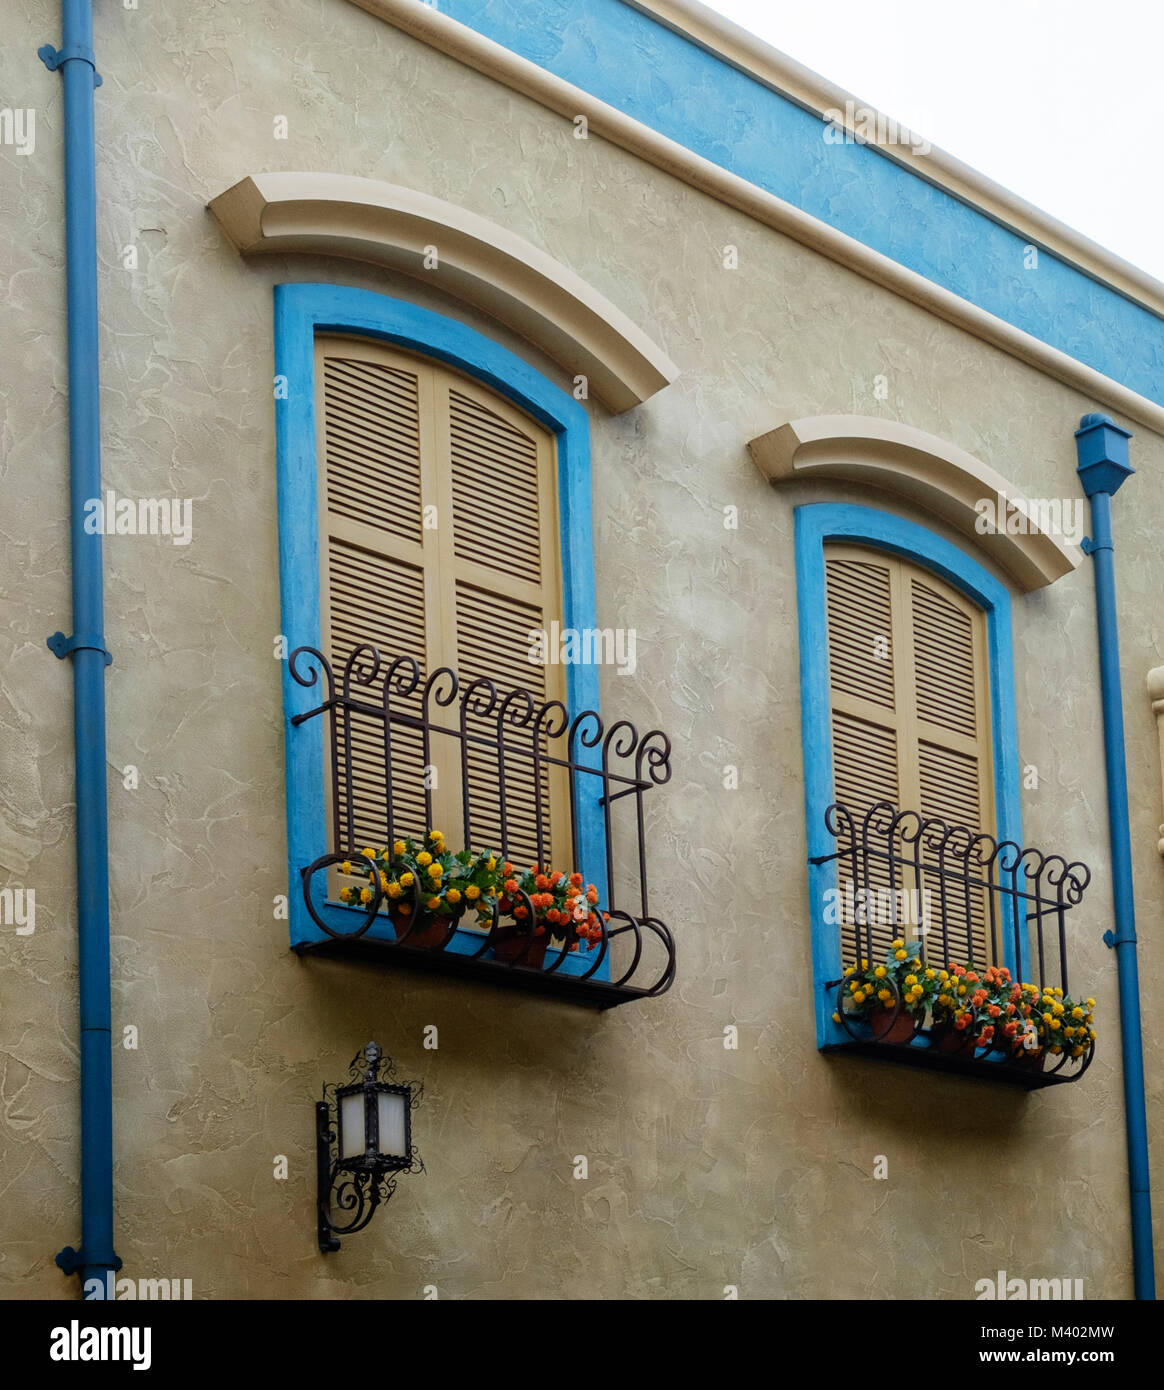 Two shuttered windows with wrought iron window boxes, bright flowers & blue frames. Two blue drain pipes. Retro light on building under one window. Stock Photo